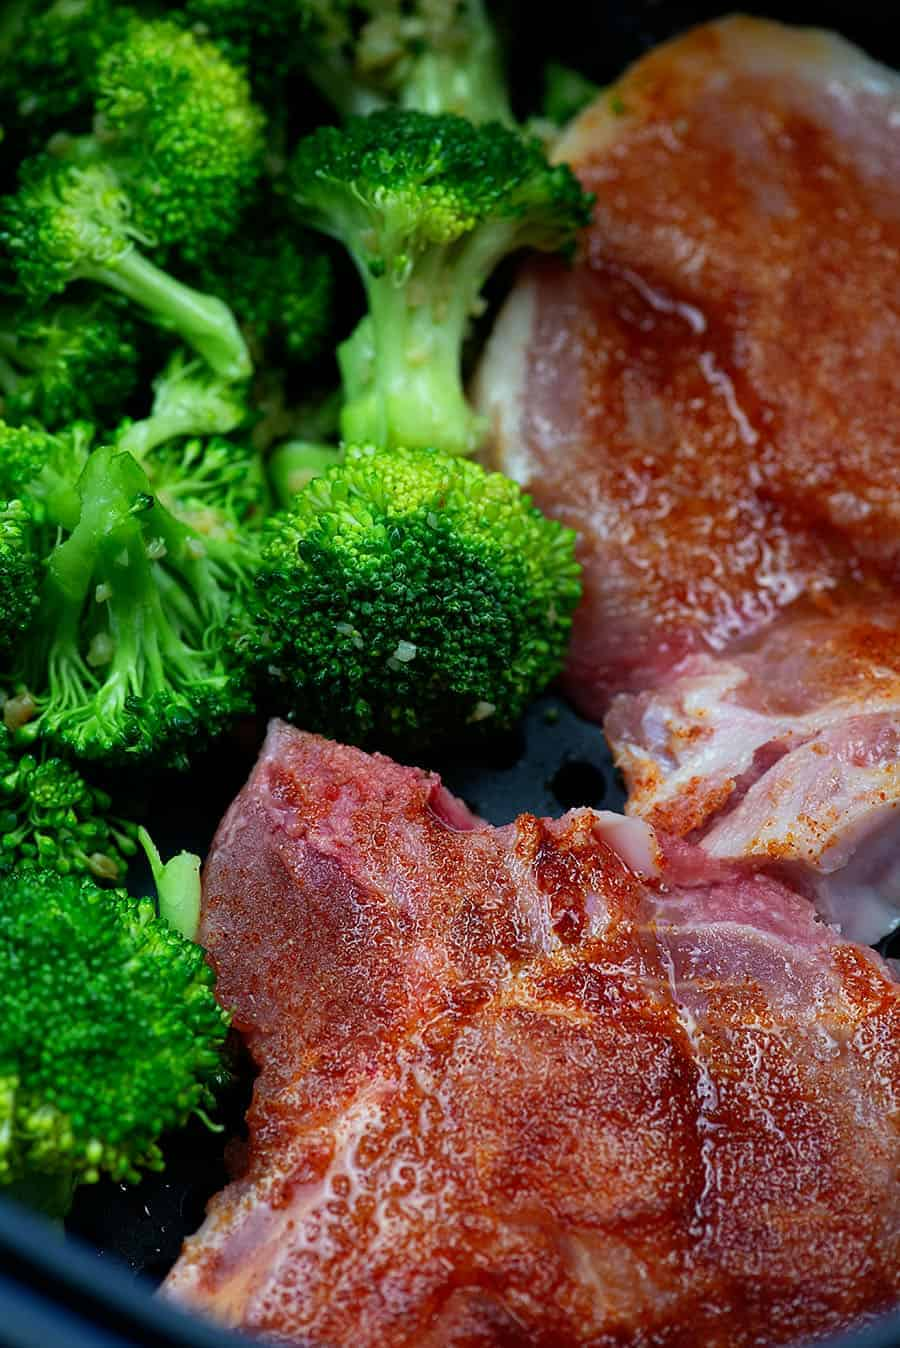 raw pork chops and broccoli in an air fryer basket